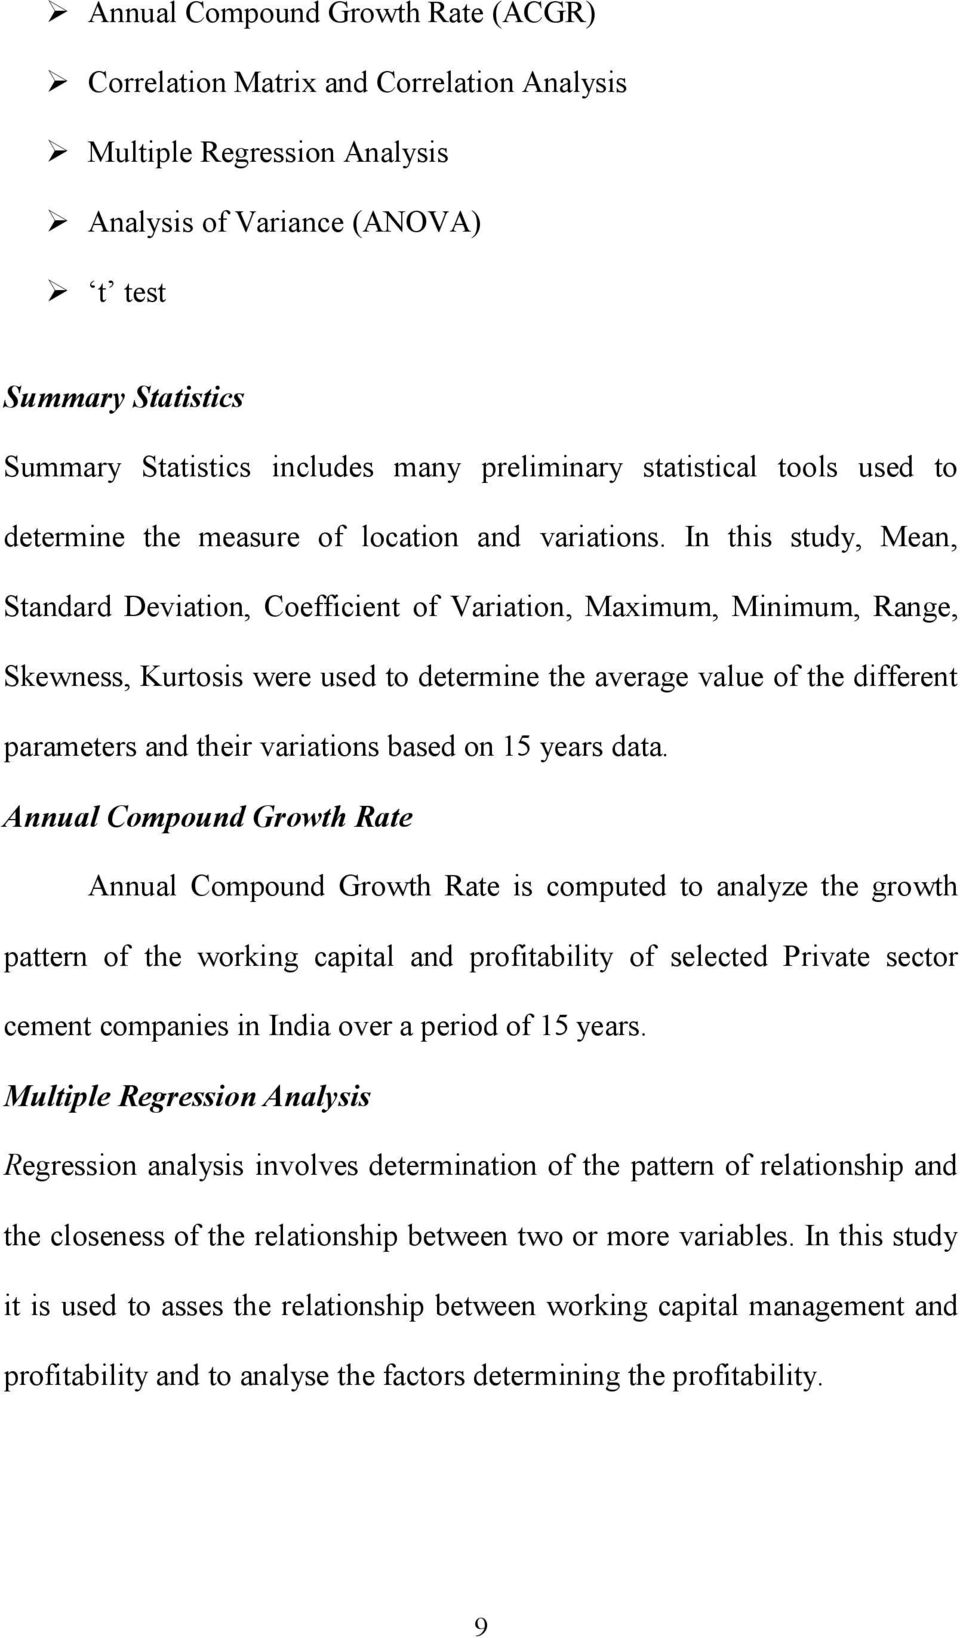 In this study, Mean, Standard Deviation, Coefficient of Variation, Maximum, Minimum, Range, Skewness, Kurtosis were used to determine the average value of the different parameters and their